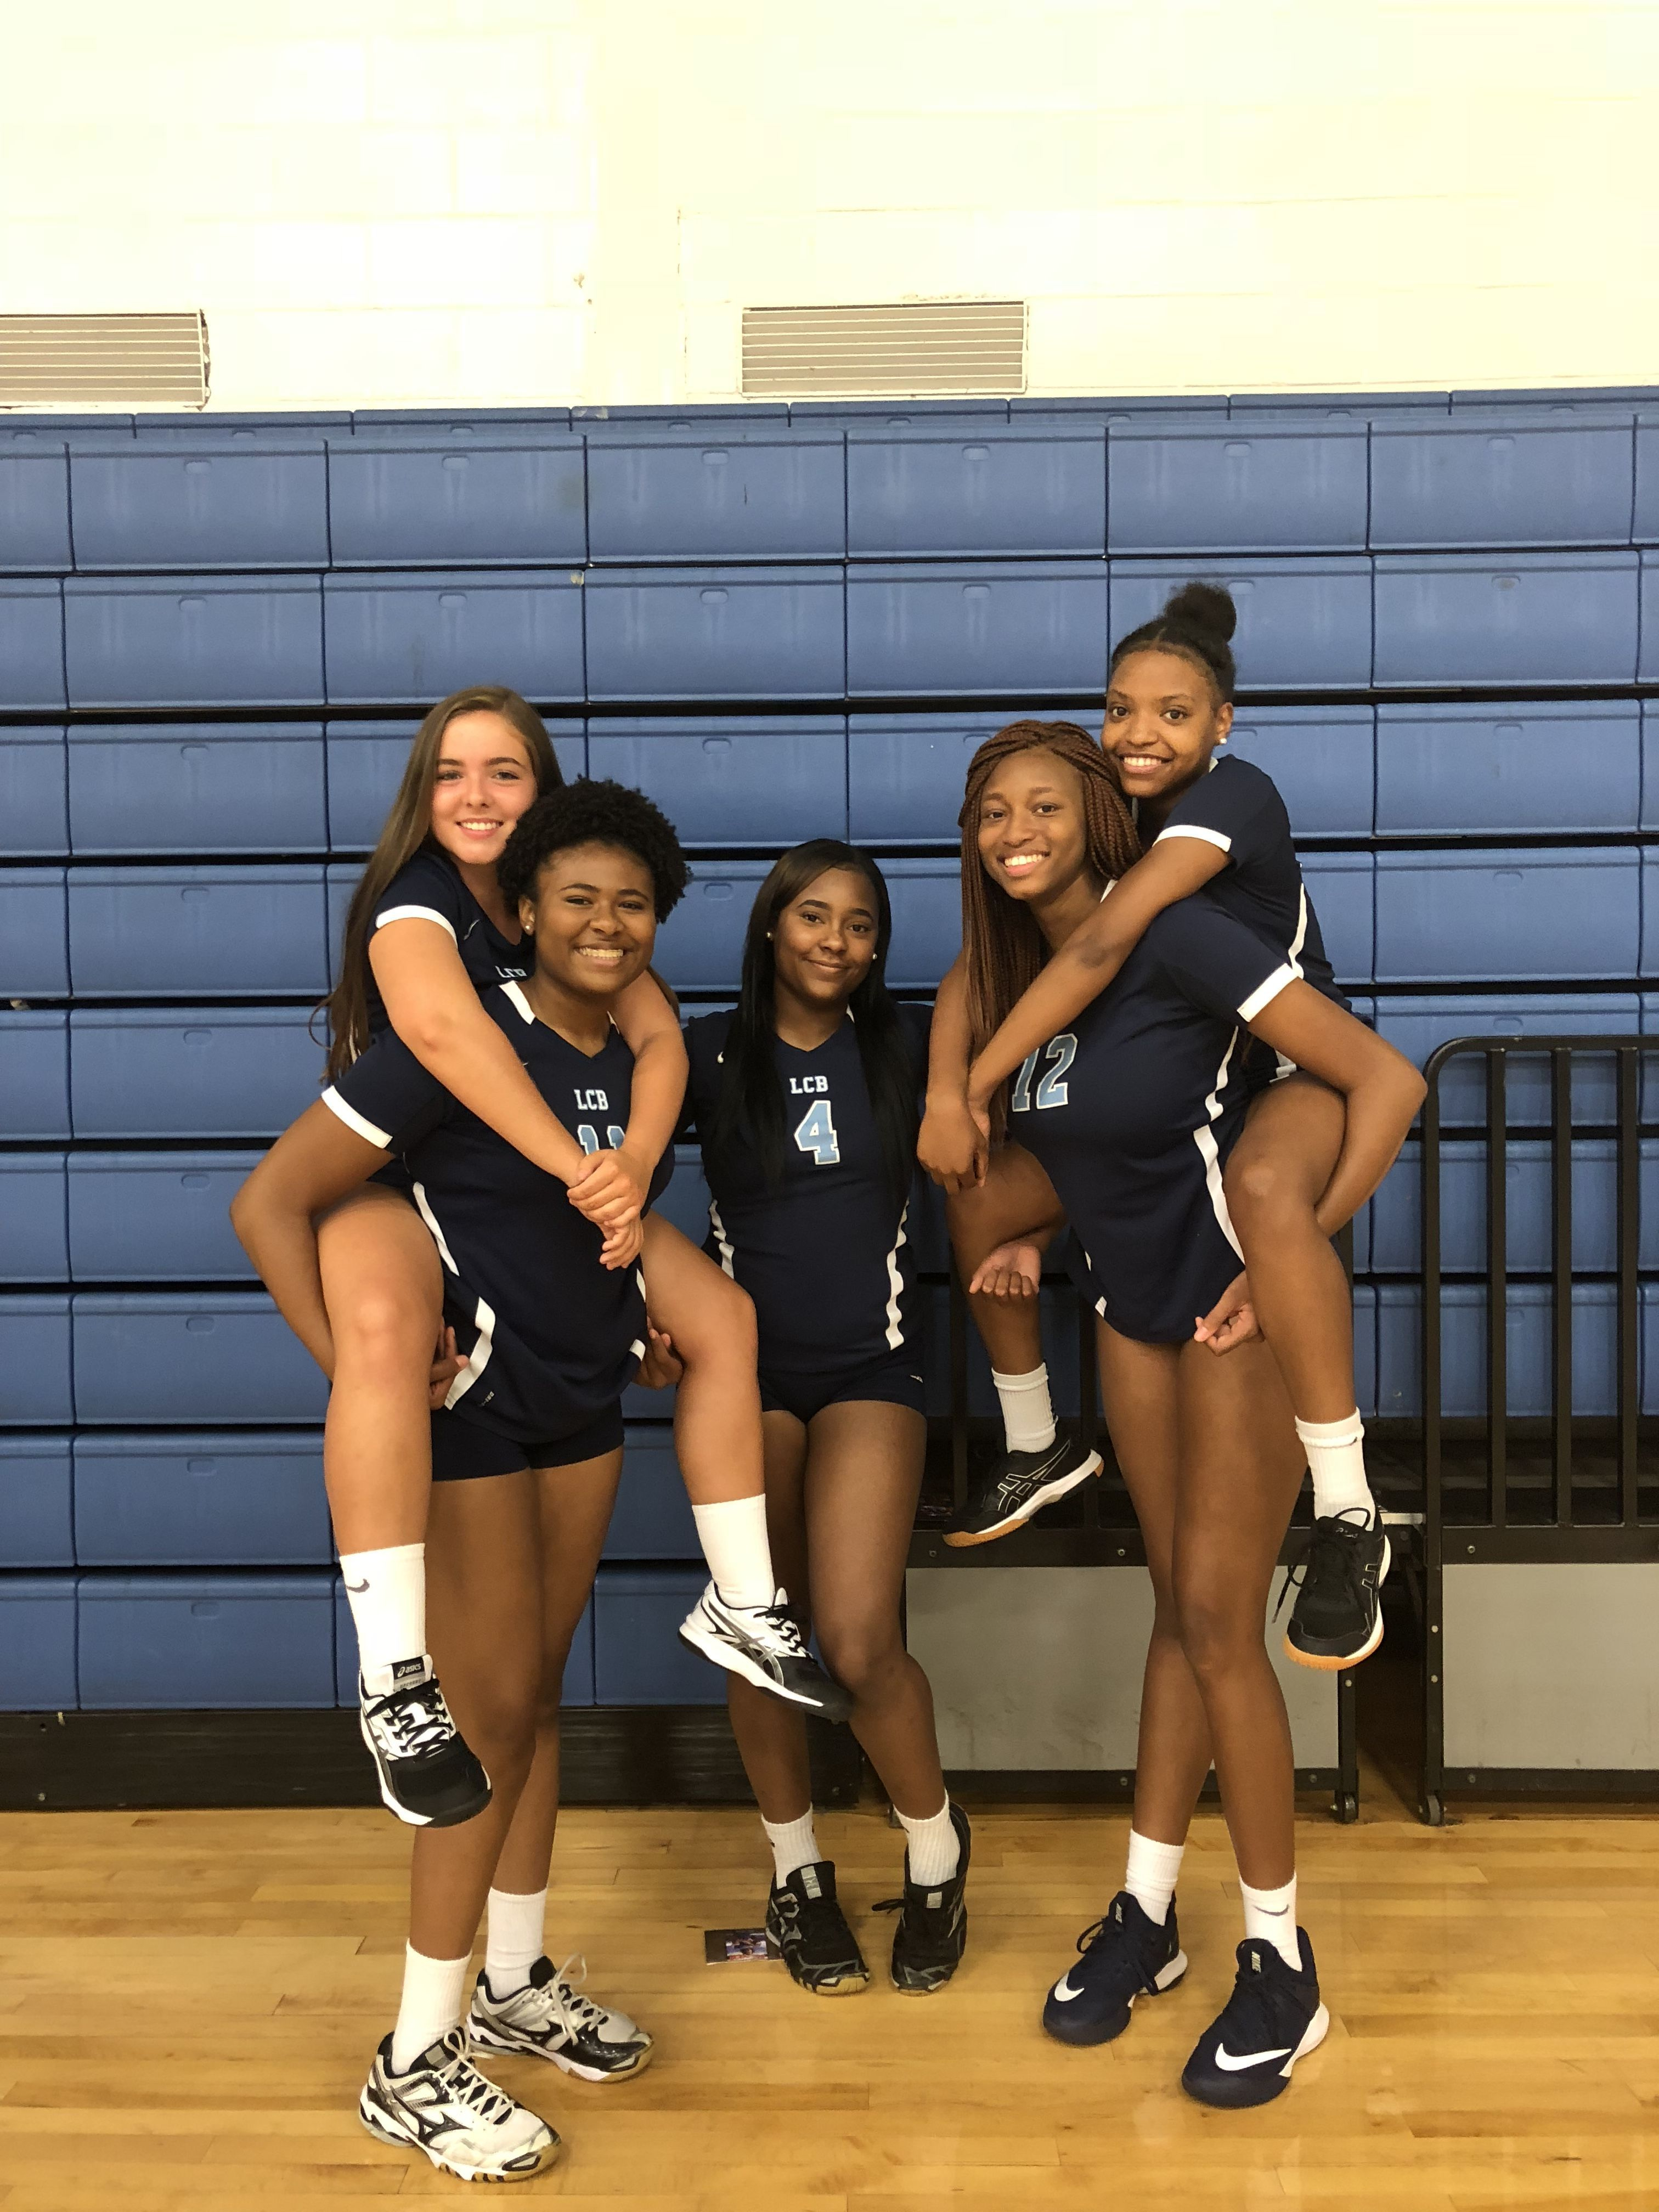 Active Pin Tamia Channell Volleyball Photos Women Volleyball Volleyball Images